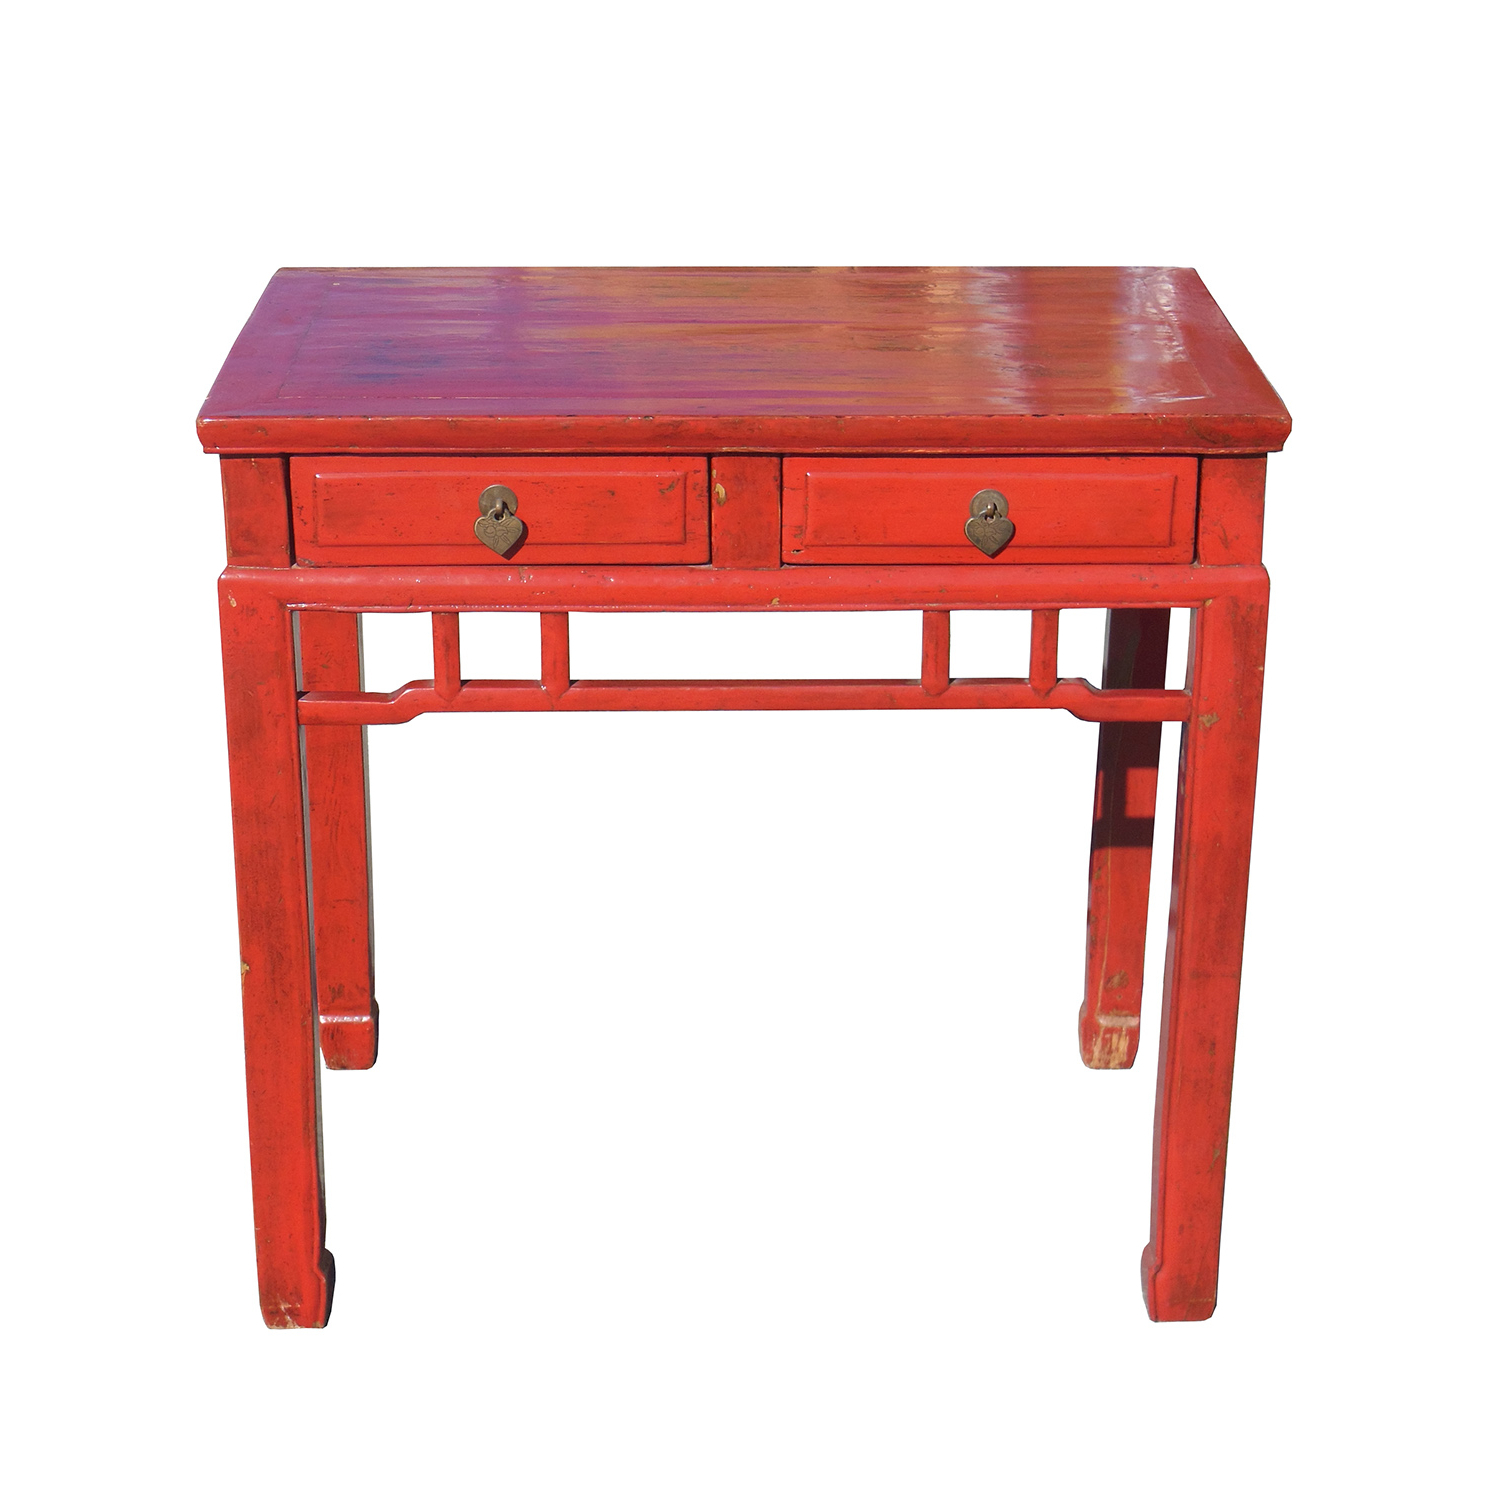 Shen's Gallery | Chinese Antiques | Side Table & Square Table | Bay Area Intended For Layered Wood Small Square Console Tables (View 10 of 20)